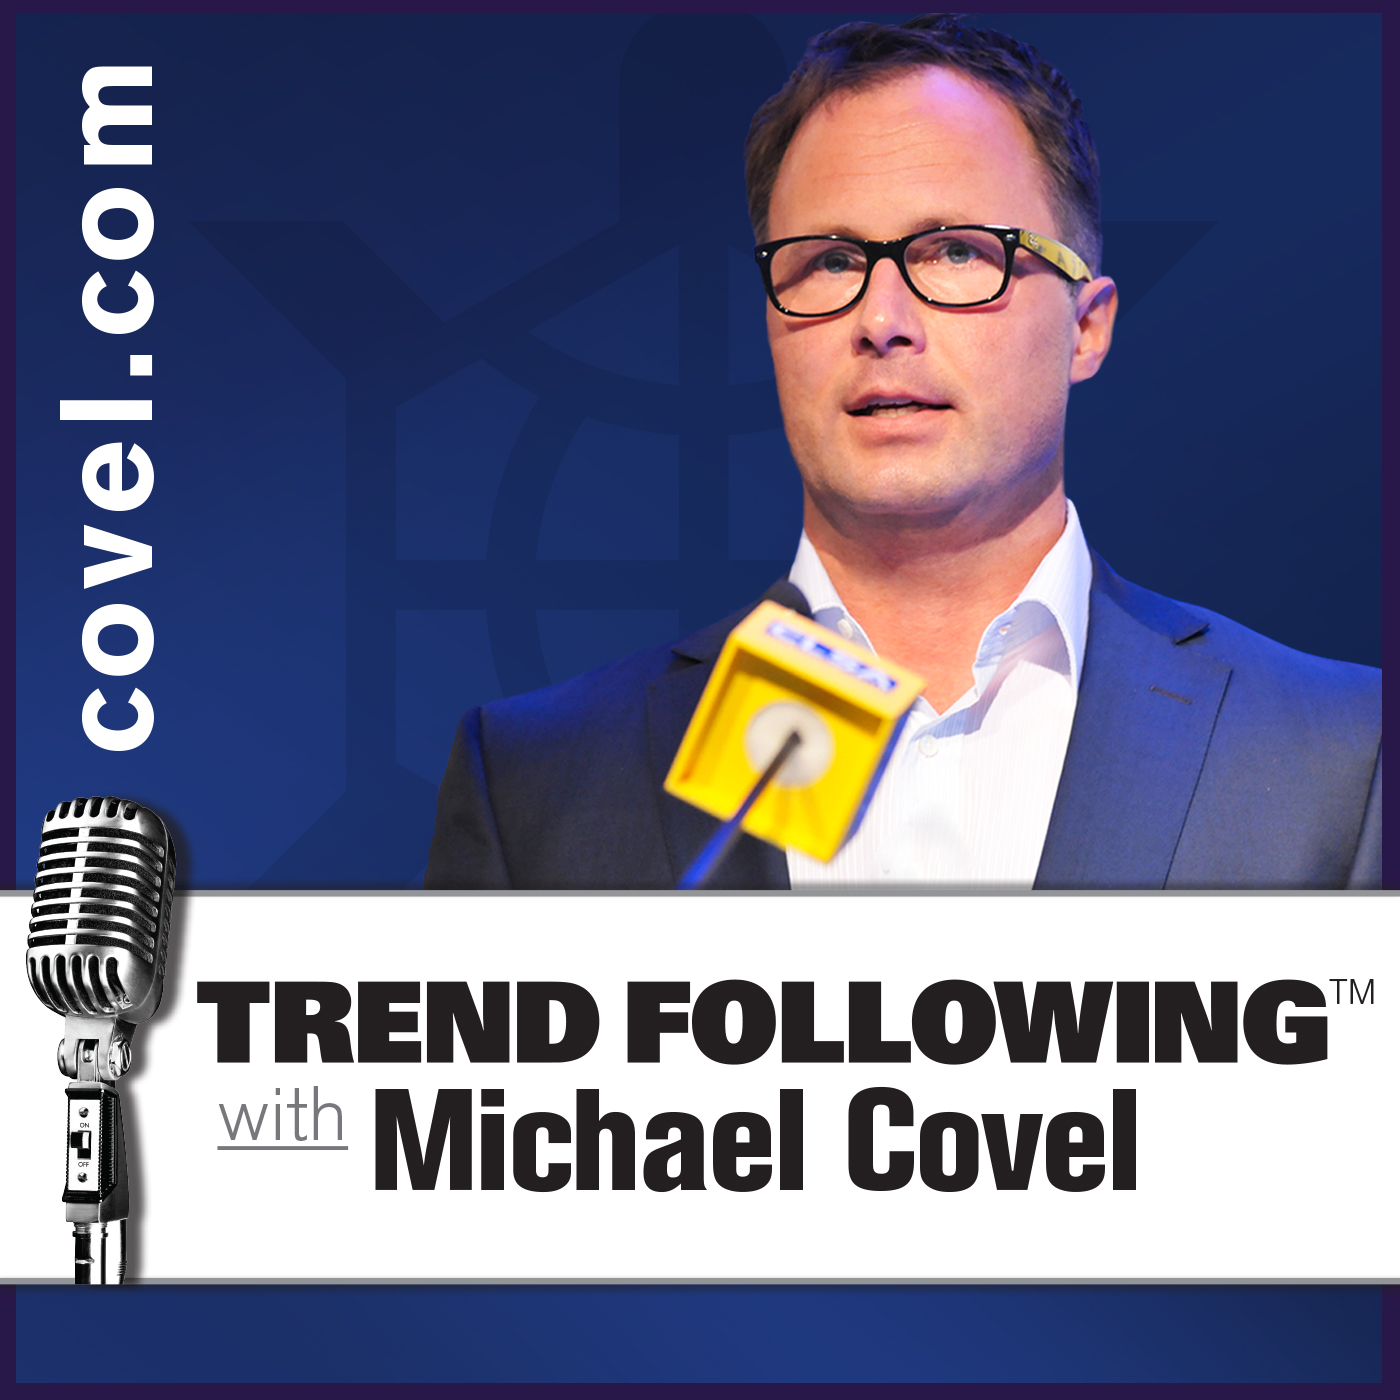 Ep. 498: Norton Reamer Interview with Michael Covel on Trend Following Radio